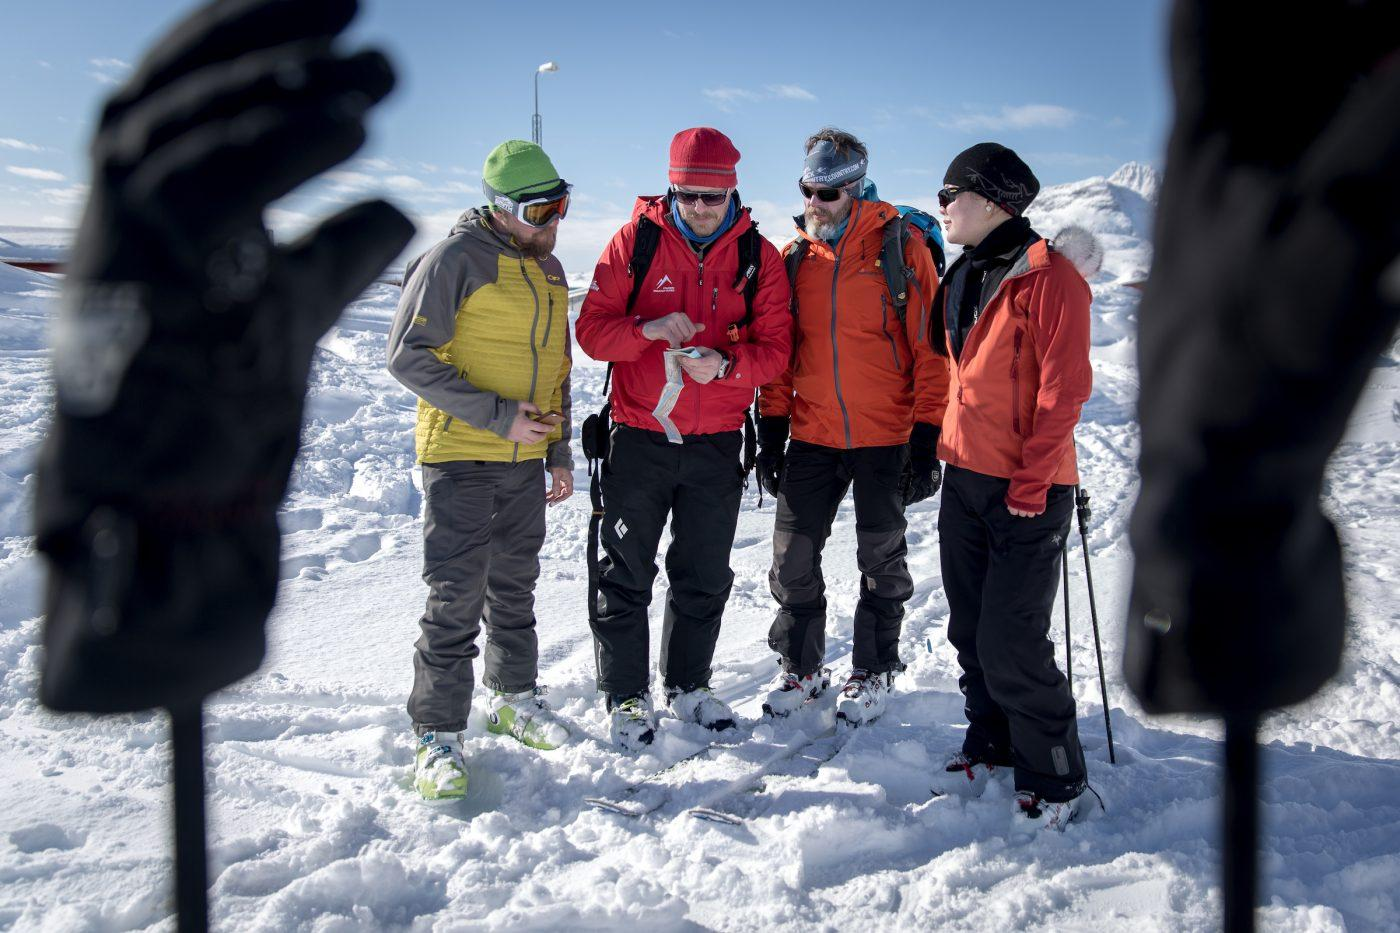 The guide preparing the group for ski touring in Kuummiut in East Greenland. By Mads Pihl